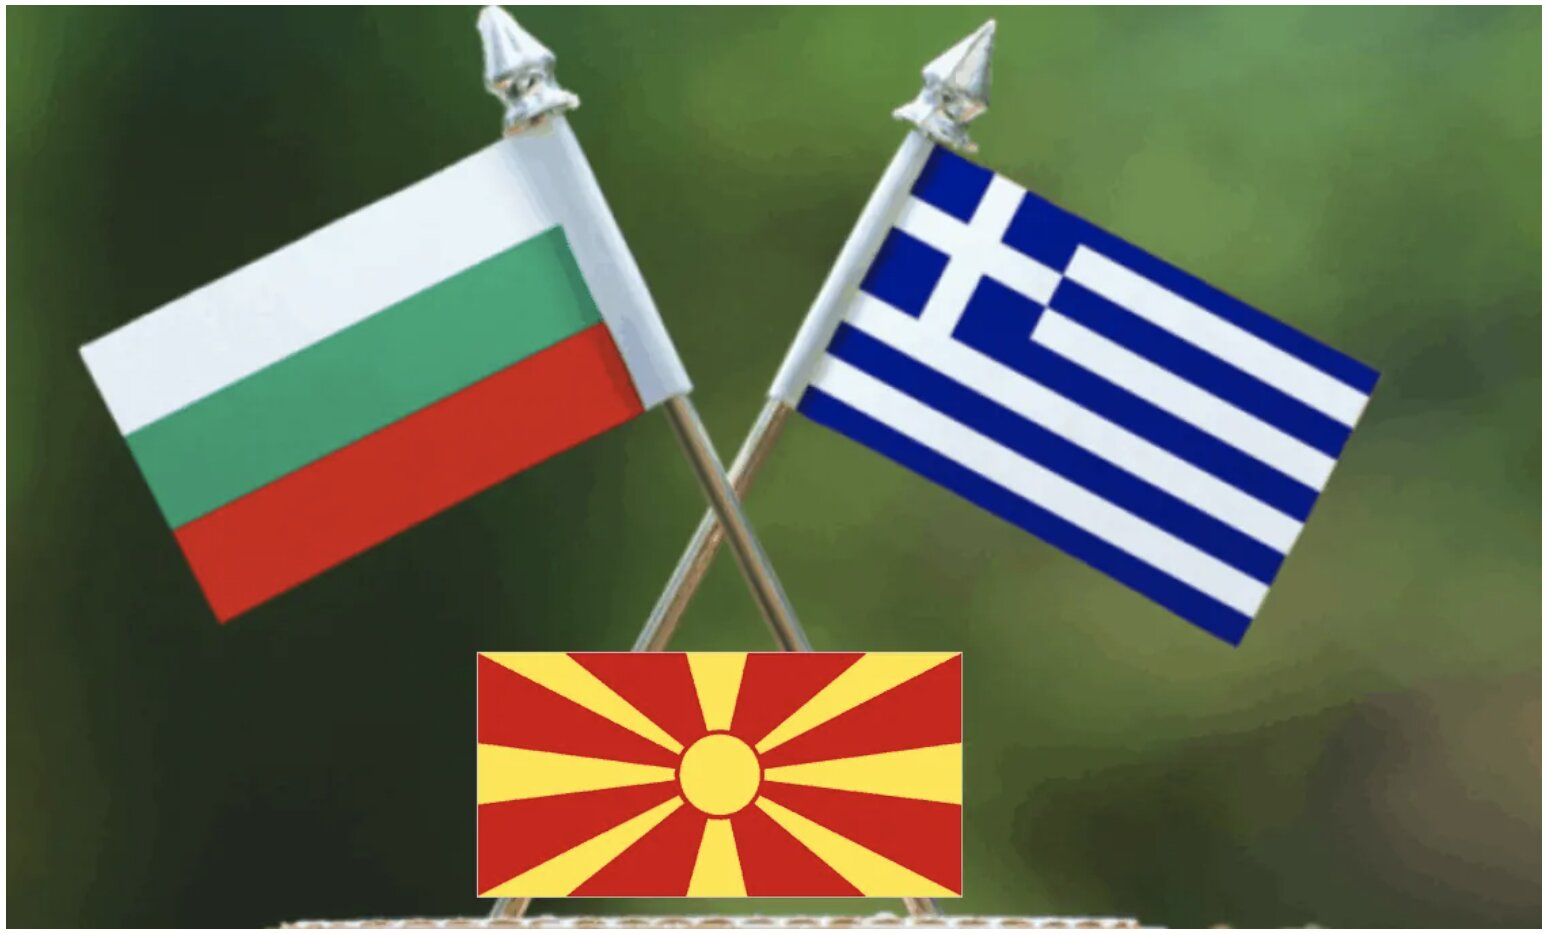 Greece and Bulgaria compete for influence over Skopje, says professor